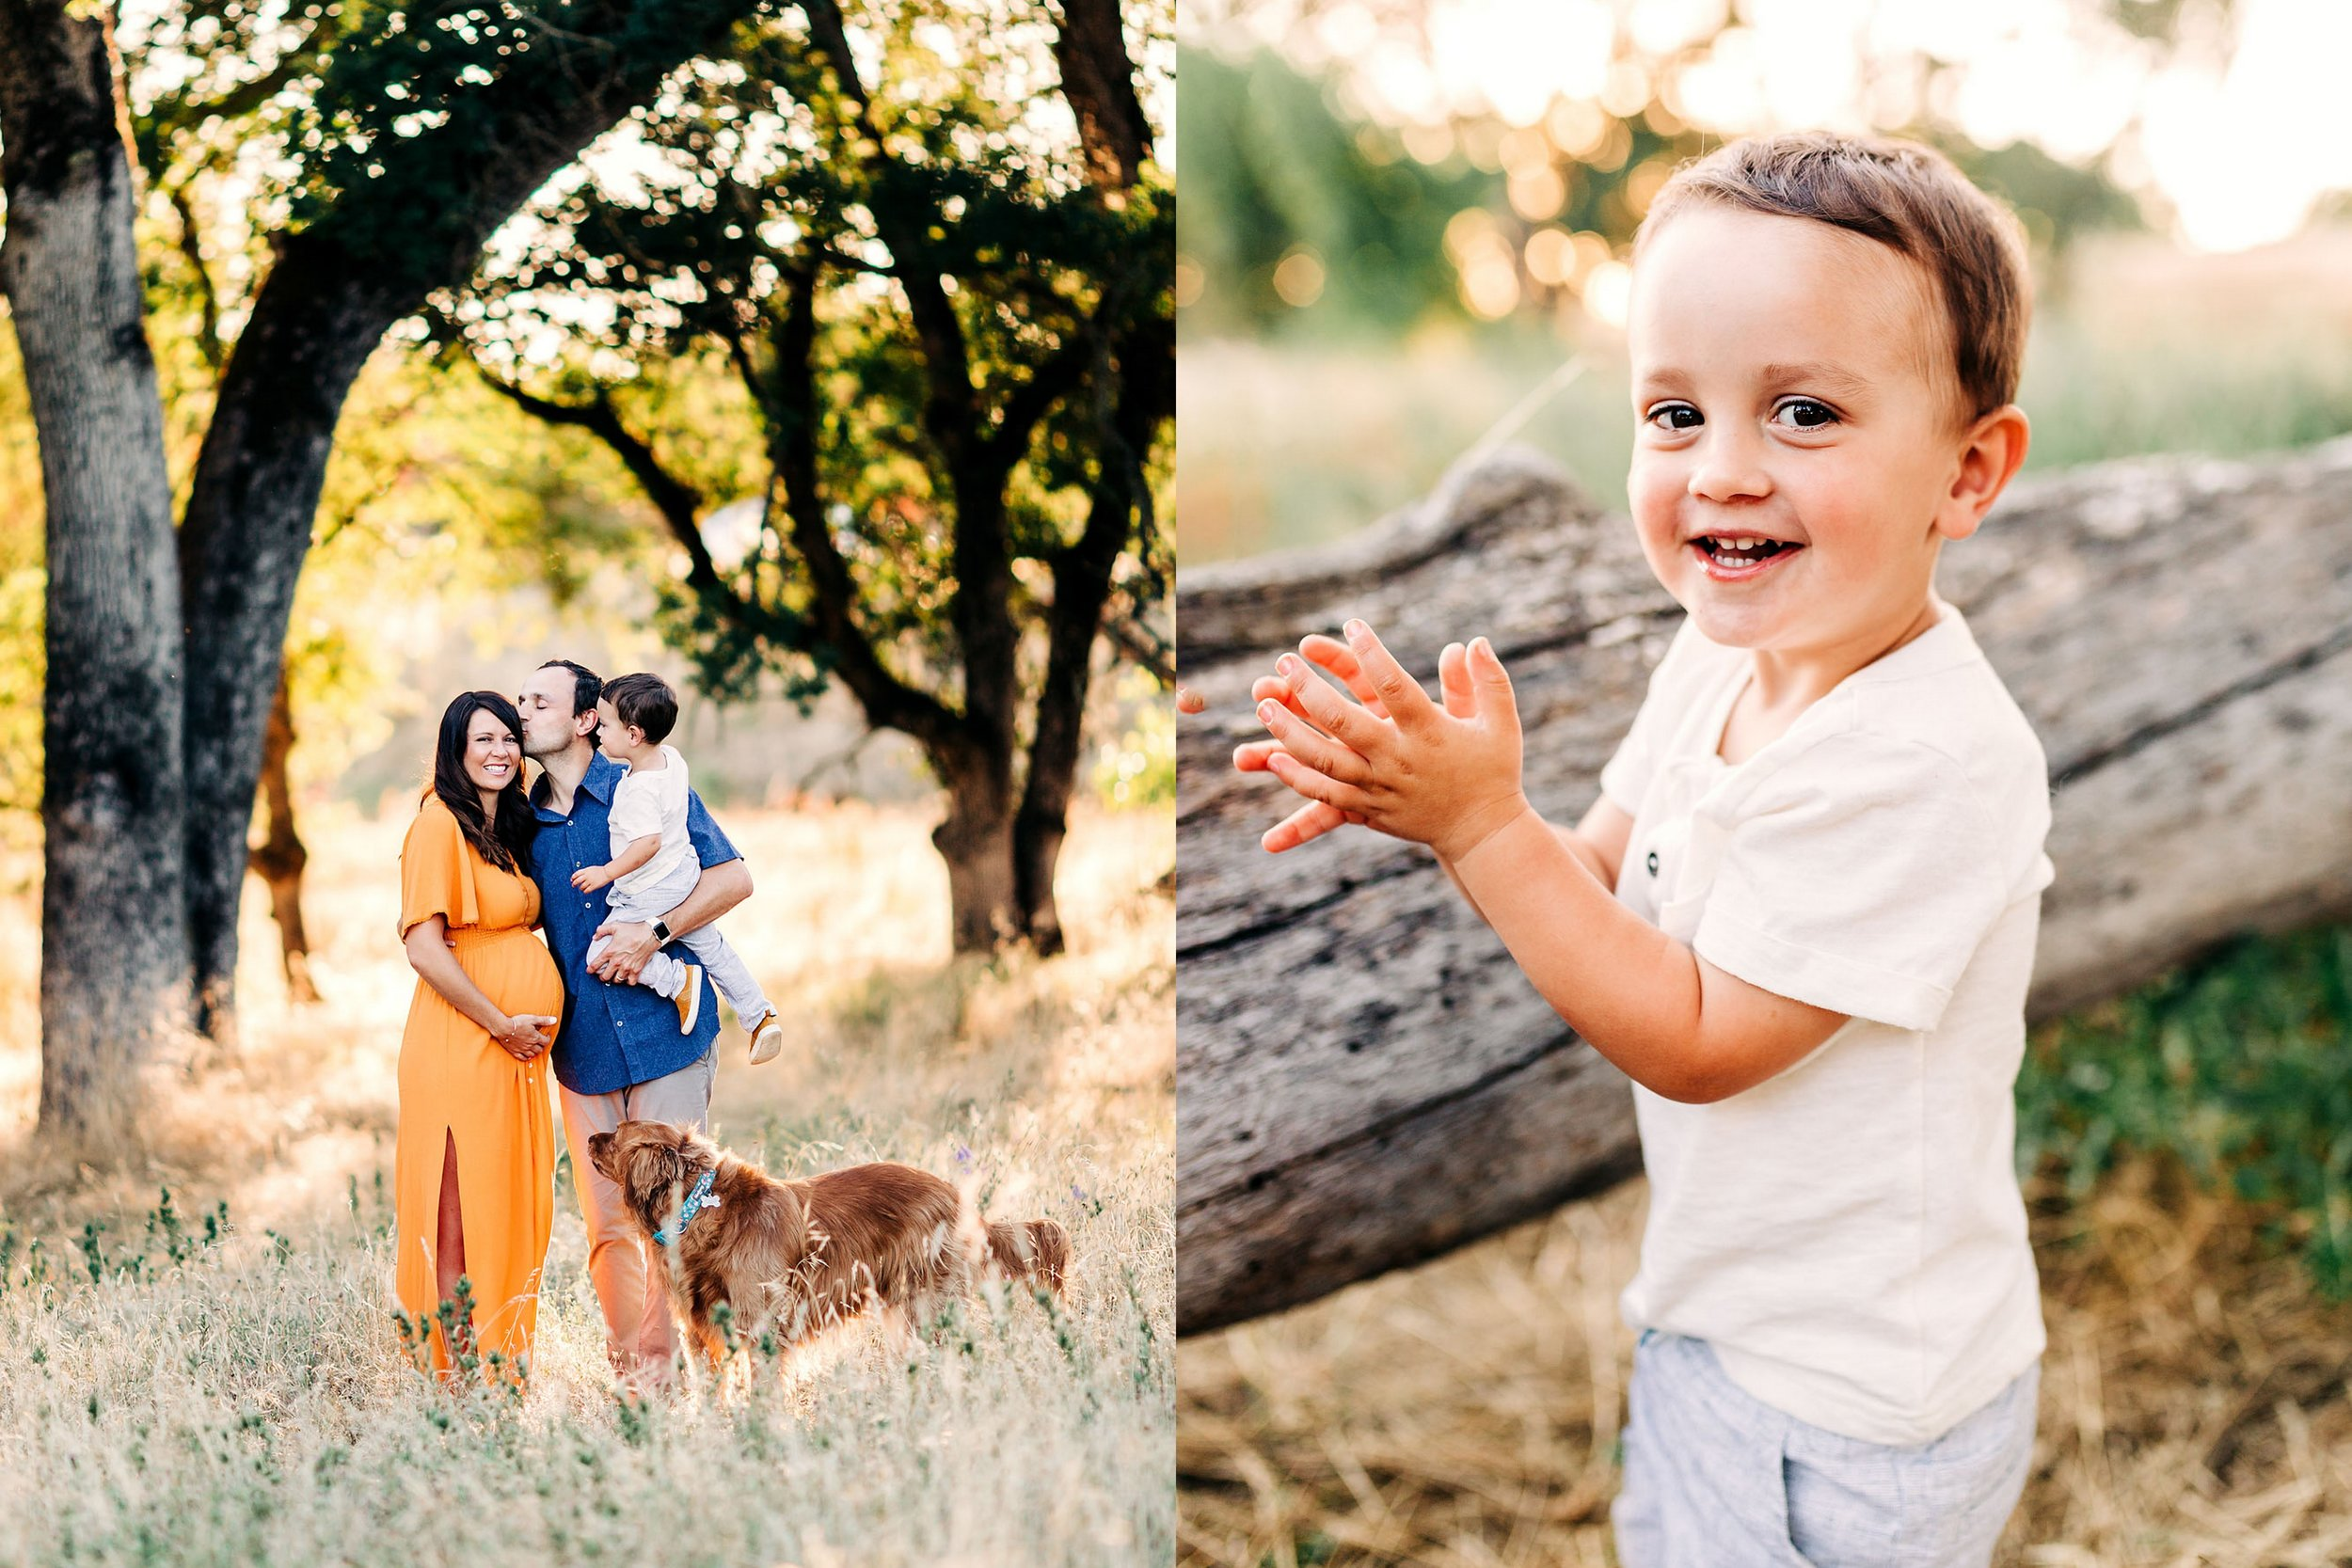 A family of three has a fun-filled maternity photo session with Amy Wright, a lifestyle family photographer in Roseville, California.